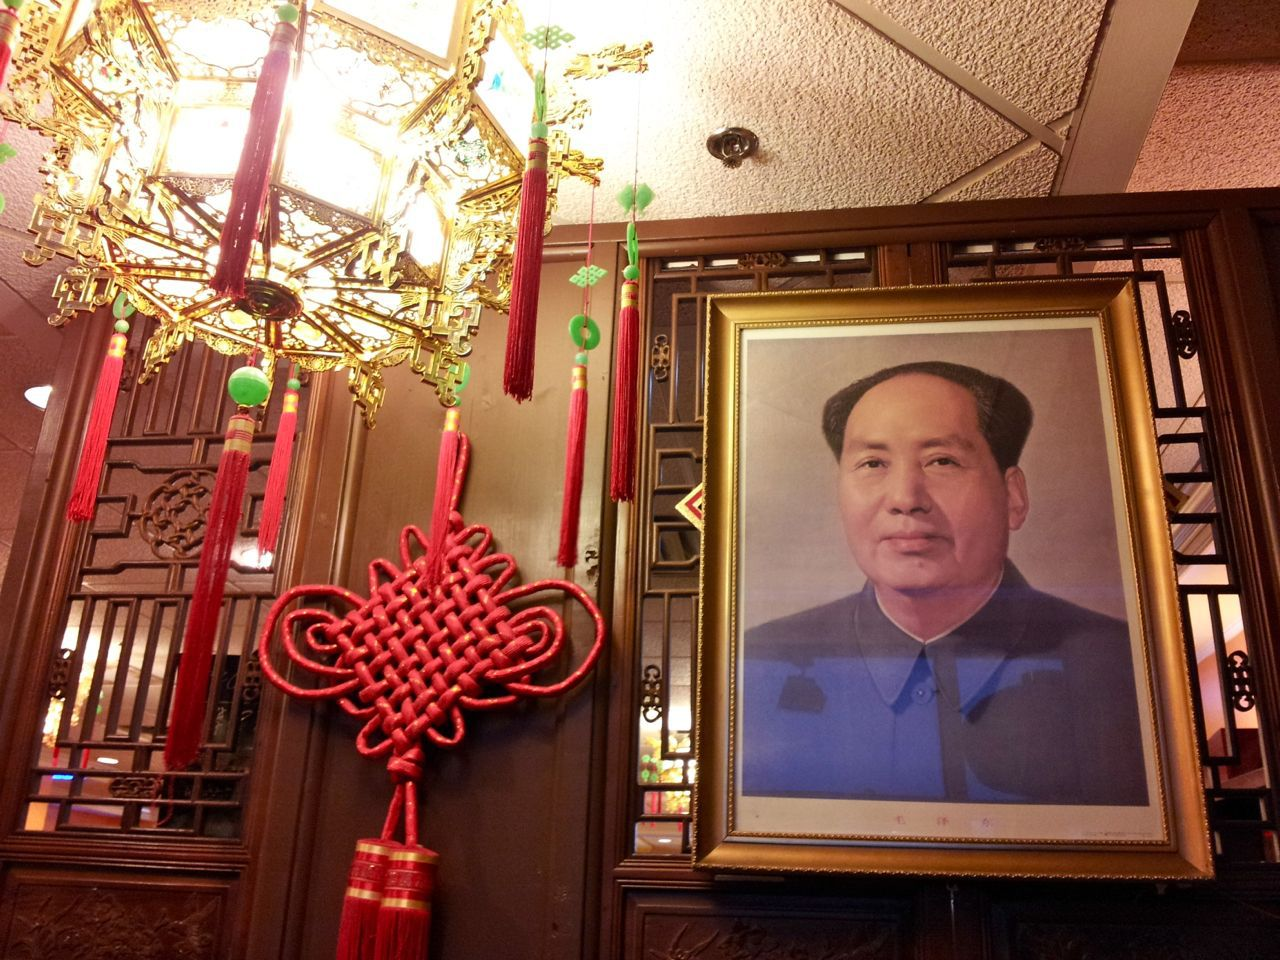 portrait of Mao